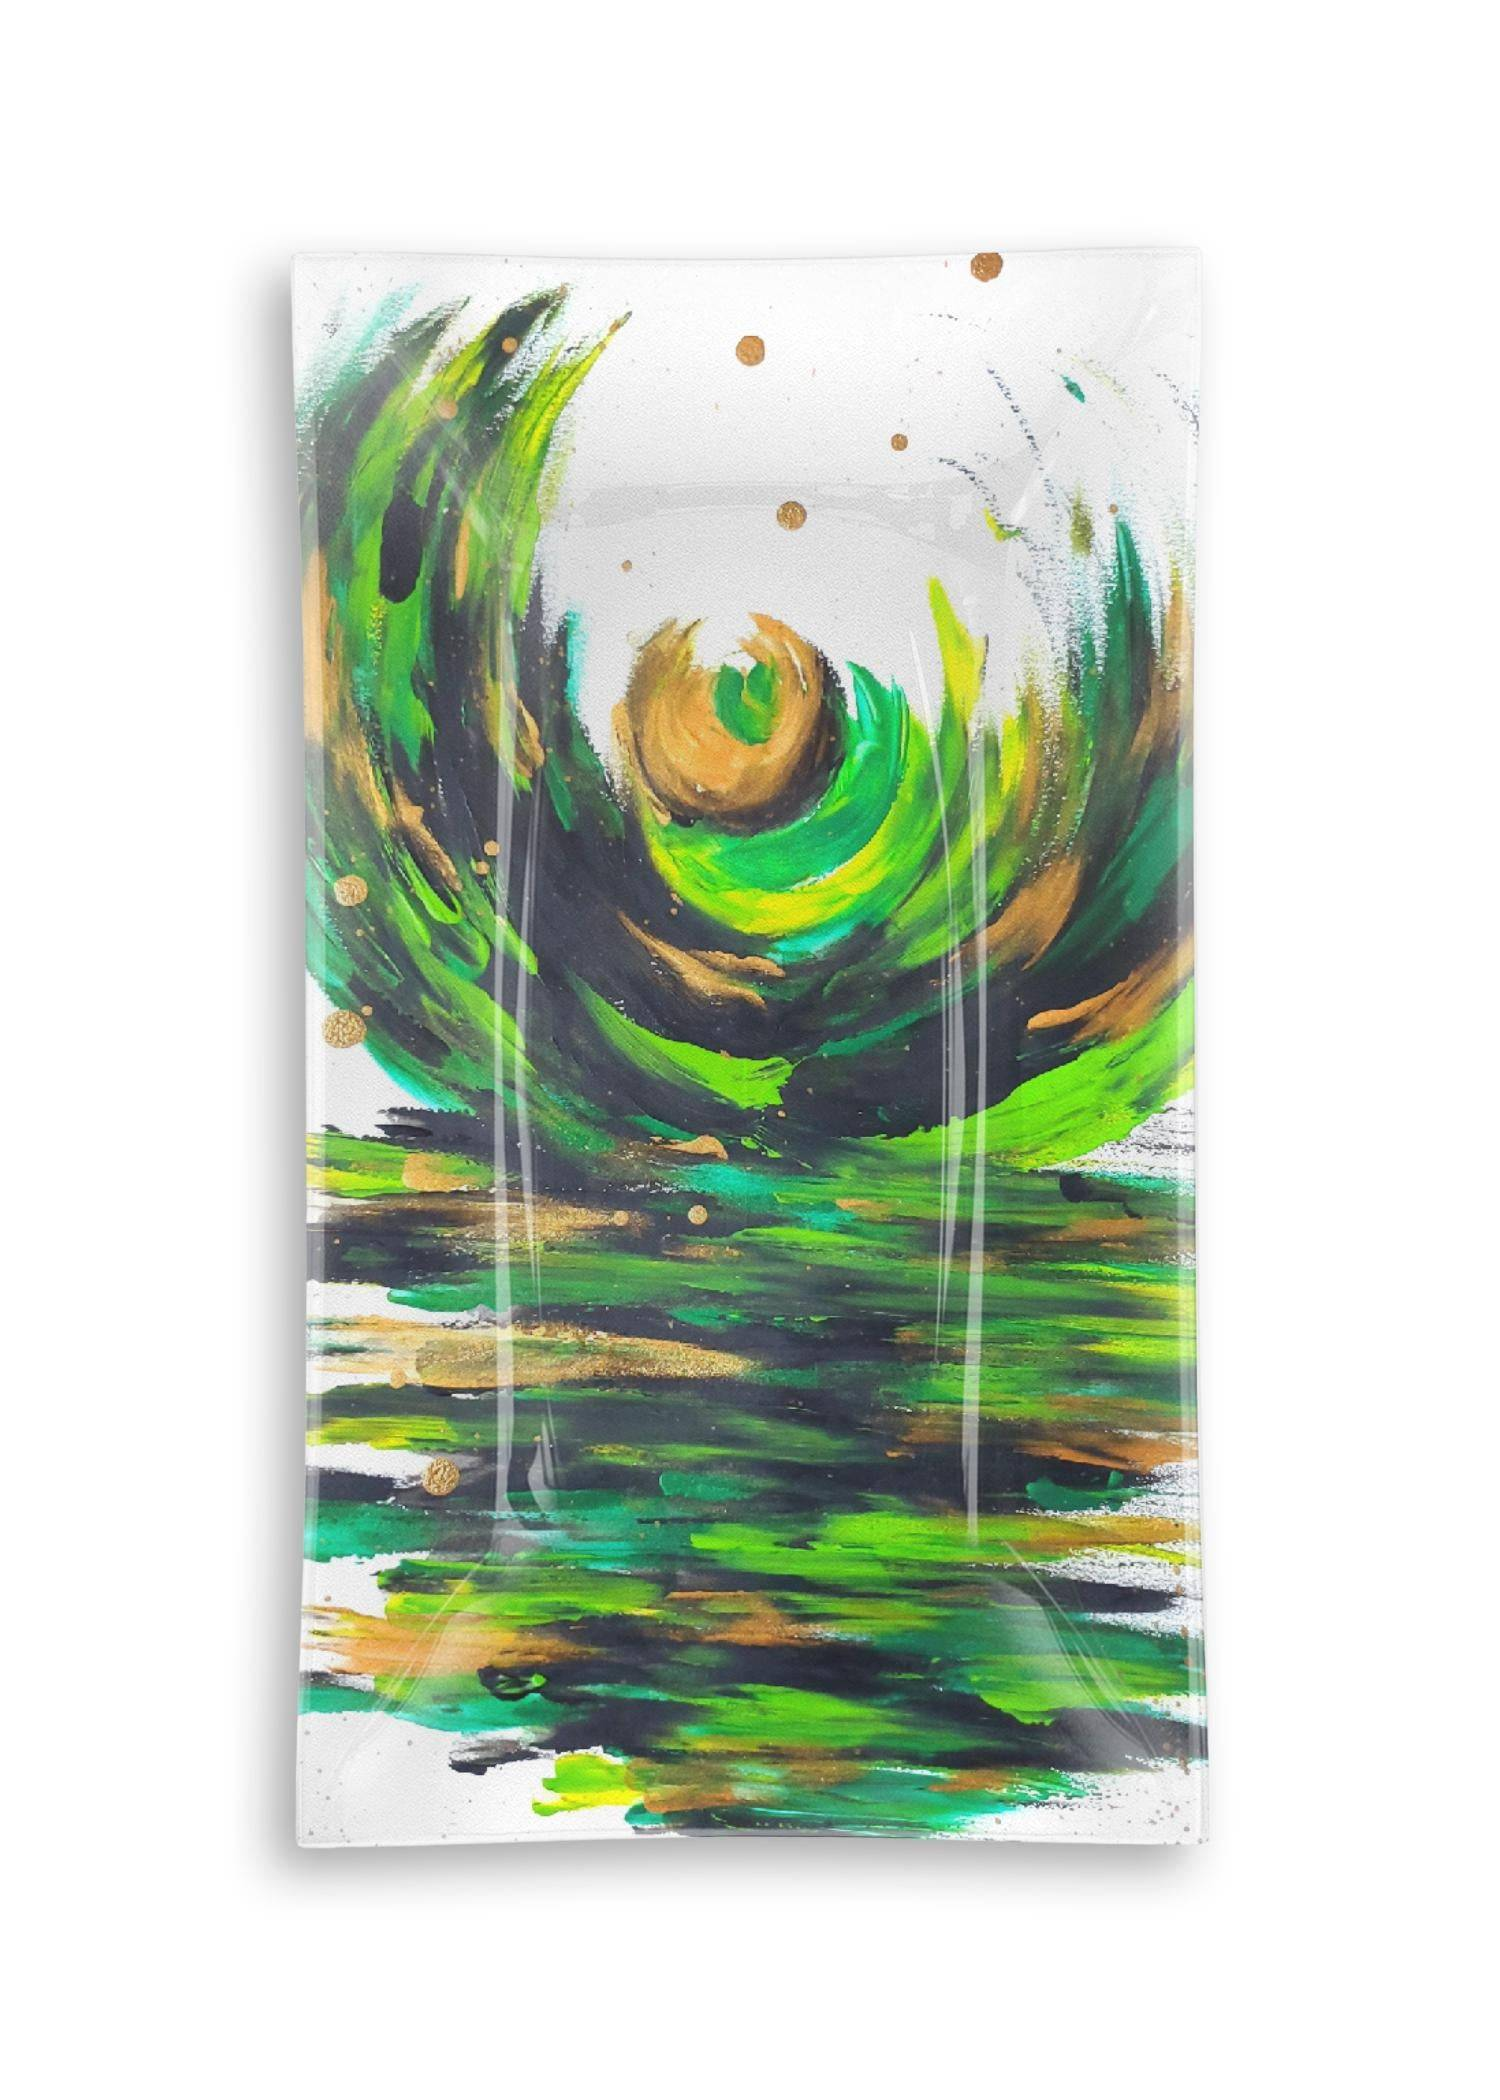 VIDA Oblong Glass Tray - Love Sees No Boundaries in Green/White/Yellow by VIDA Original Artist  - Size: Large